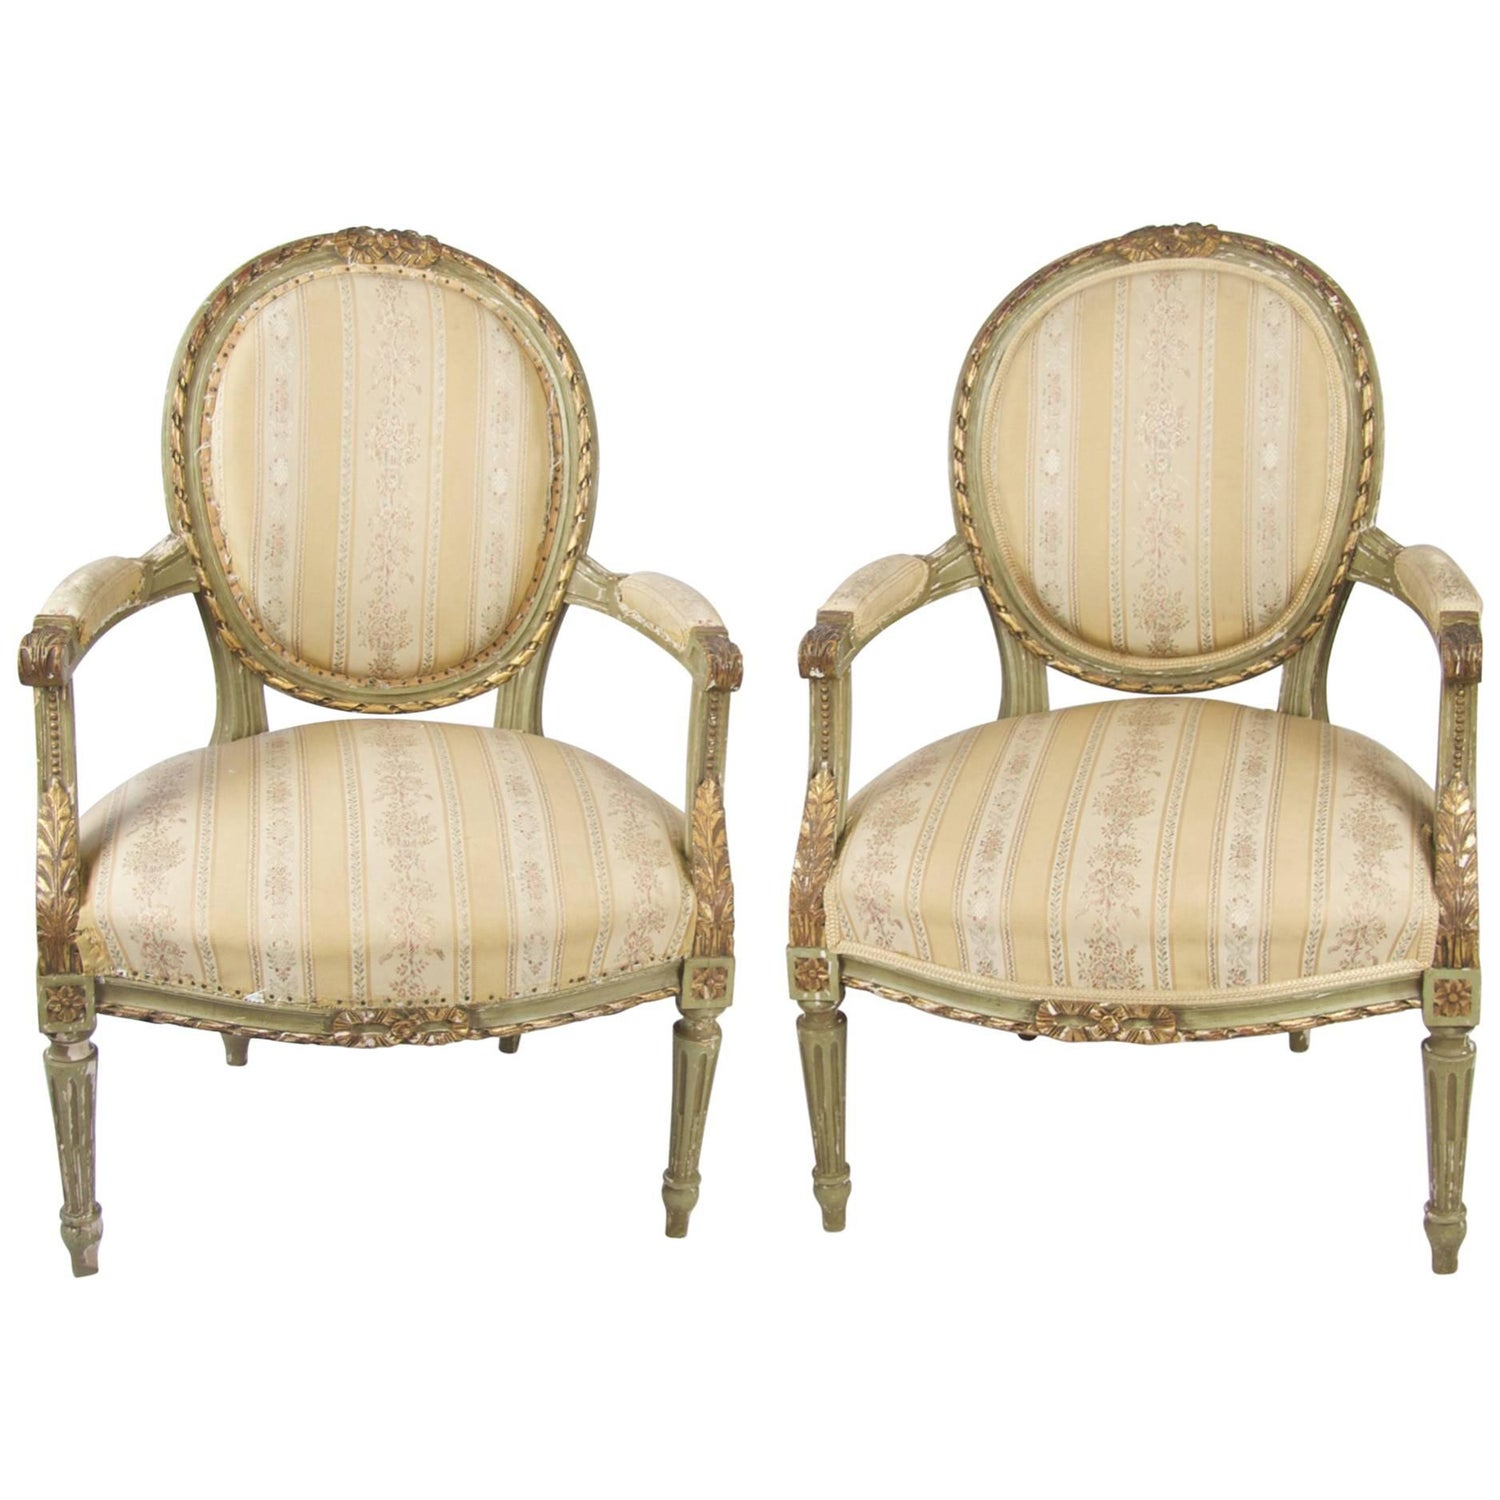 Late 19th Century Antique Swedish Gustavian Carved Gilt Carver Chairs